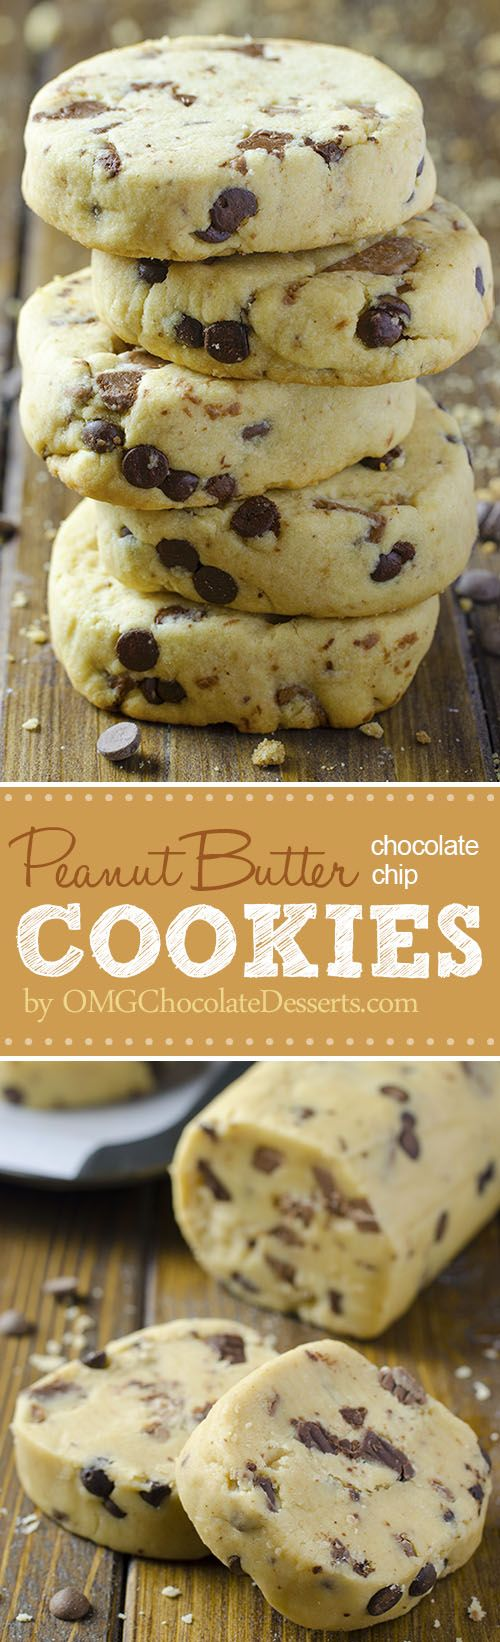 Chocolate Chip Shortbread Cookies with Peanut Butter